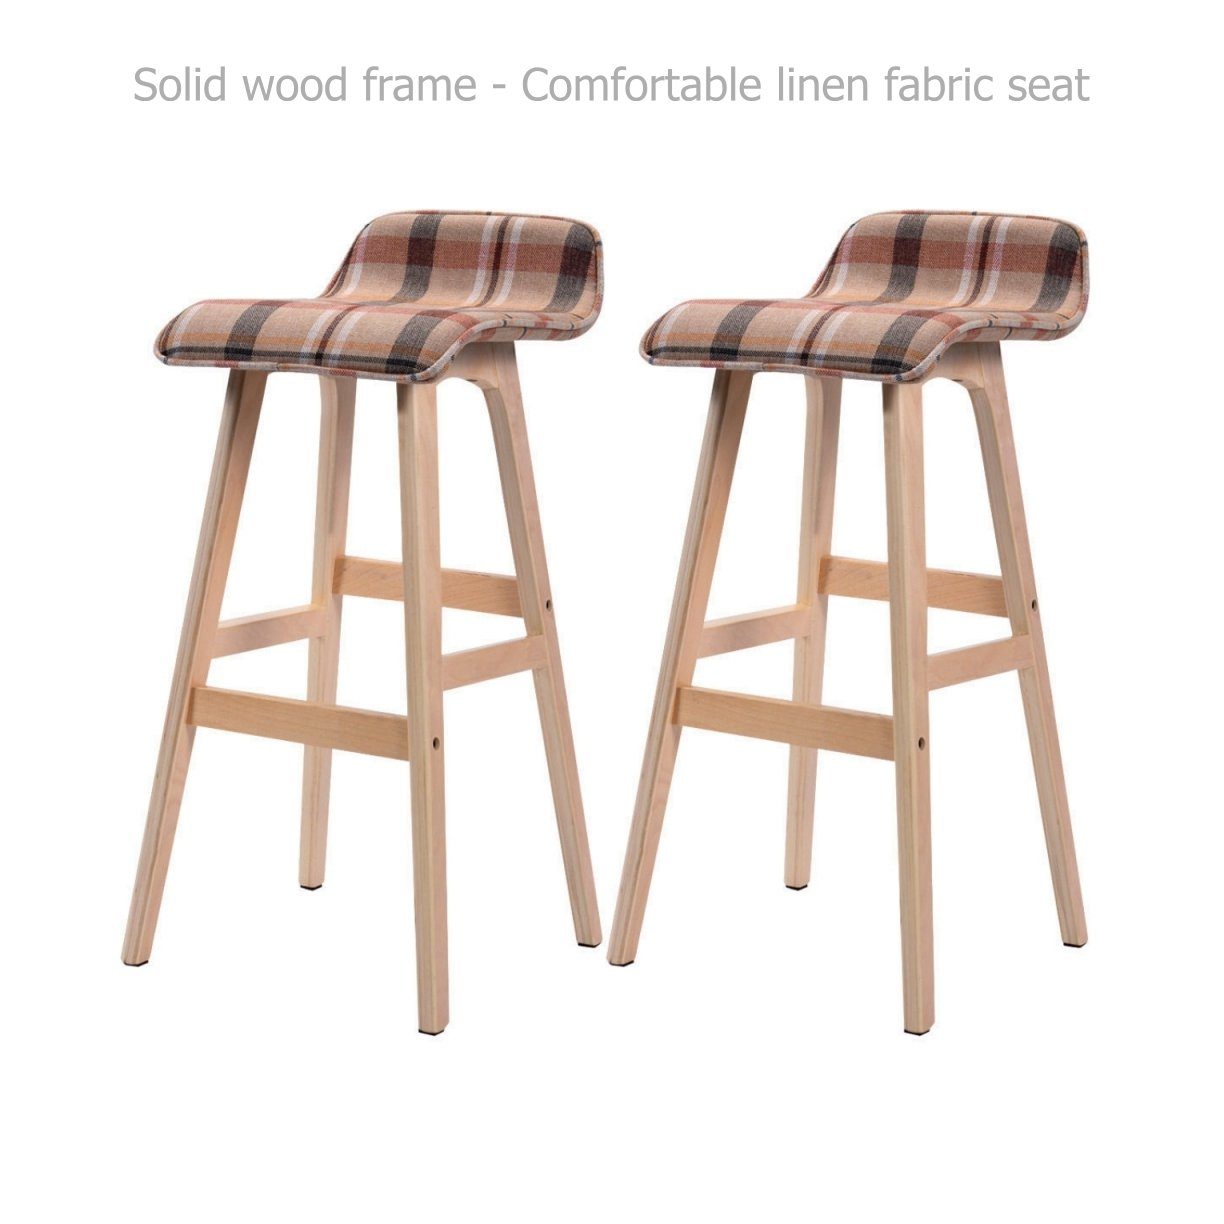 Modern Classic Bentwood Bar Stools Solid Wood Frame Unique Linen Fabrics Seat Counter Height Pub Kitchen Dining Chair - Set of 2 Striped #1530